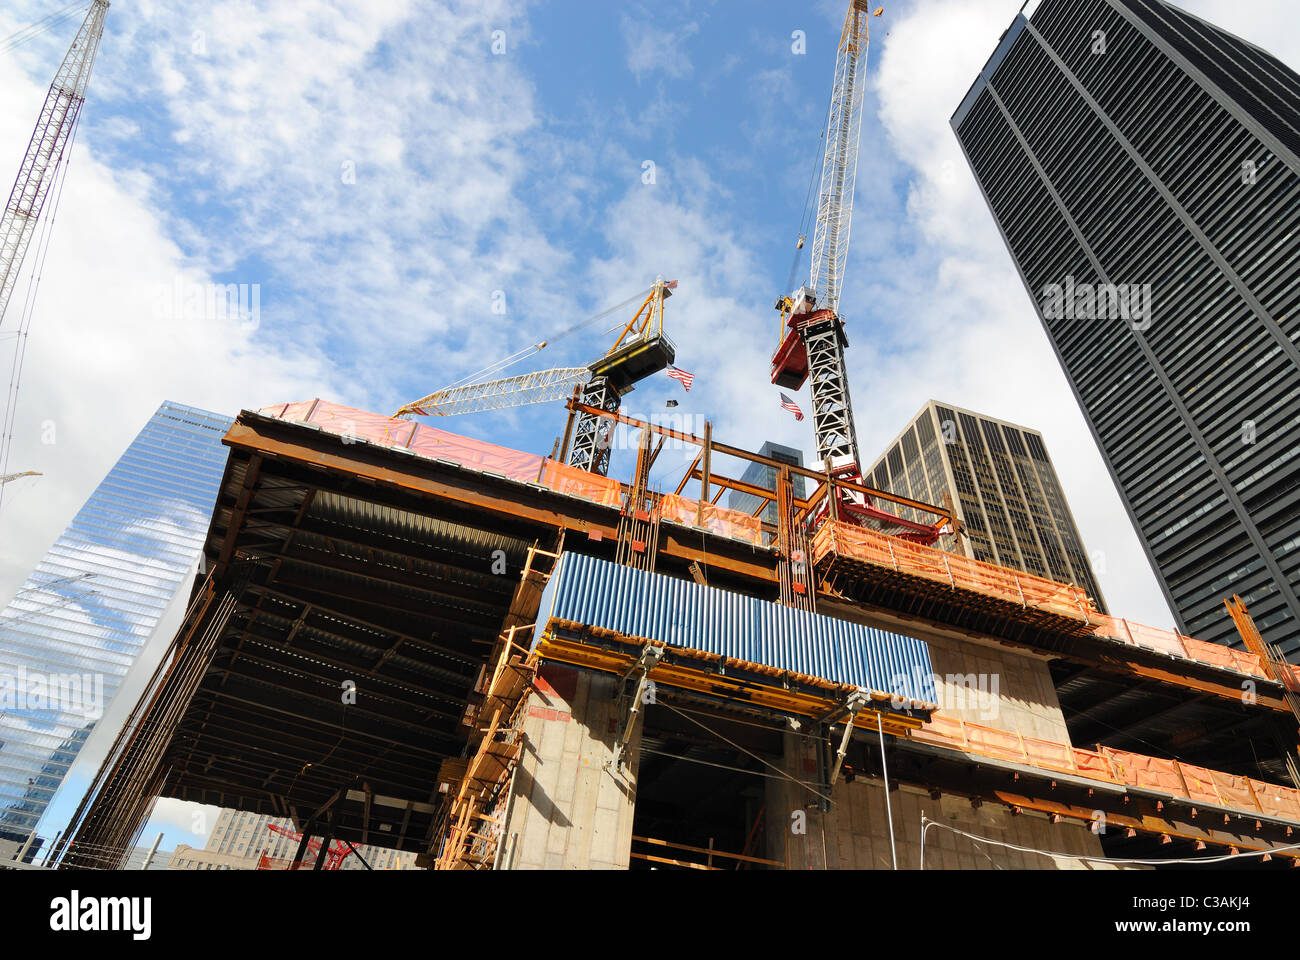 Ongoing construction at the world trade center site. - Stock Image